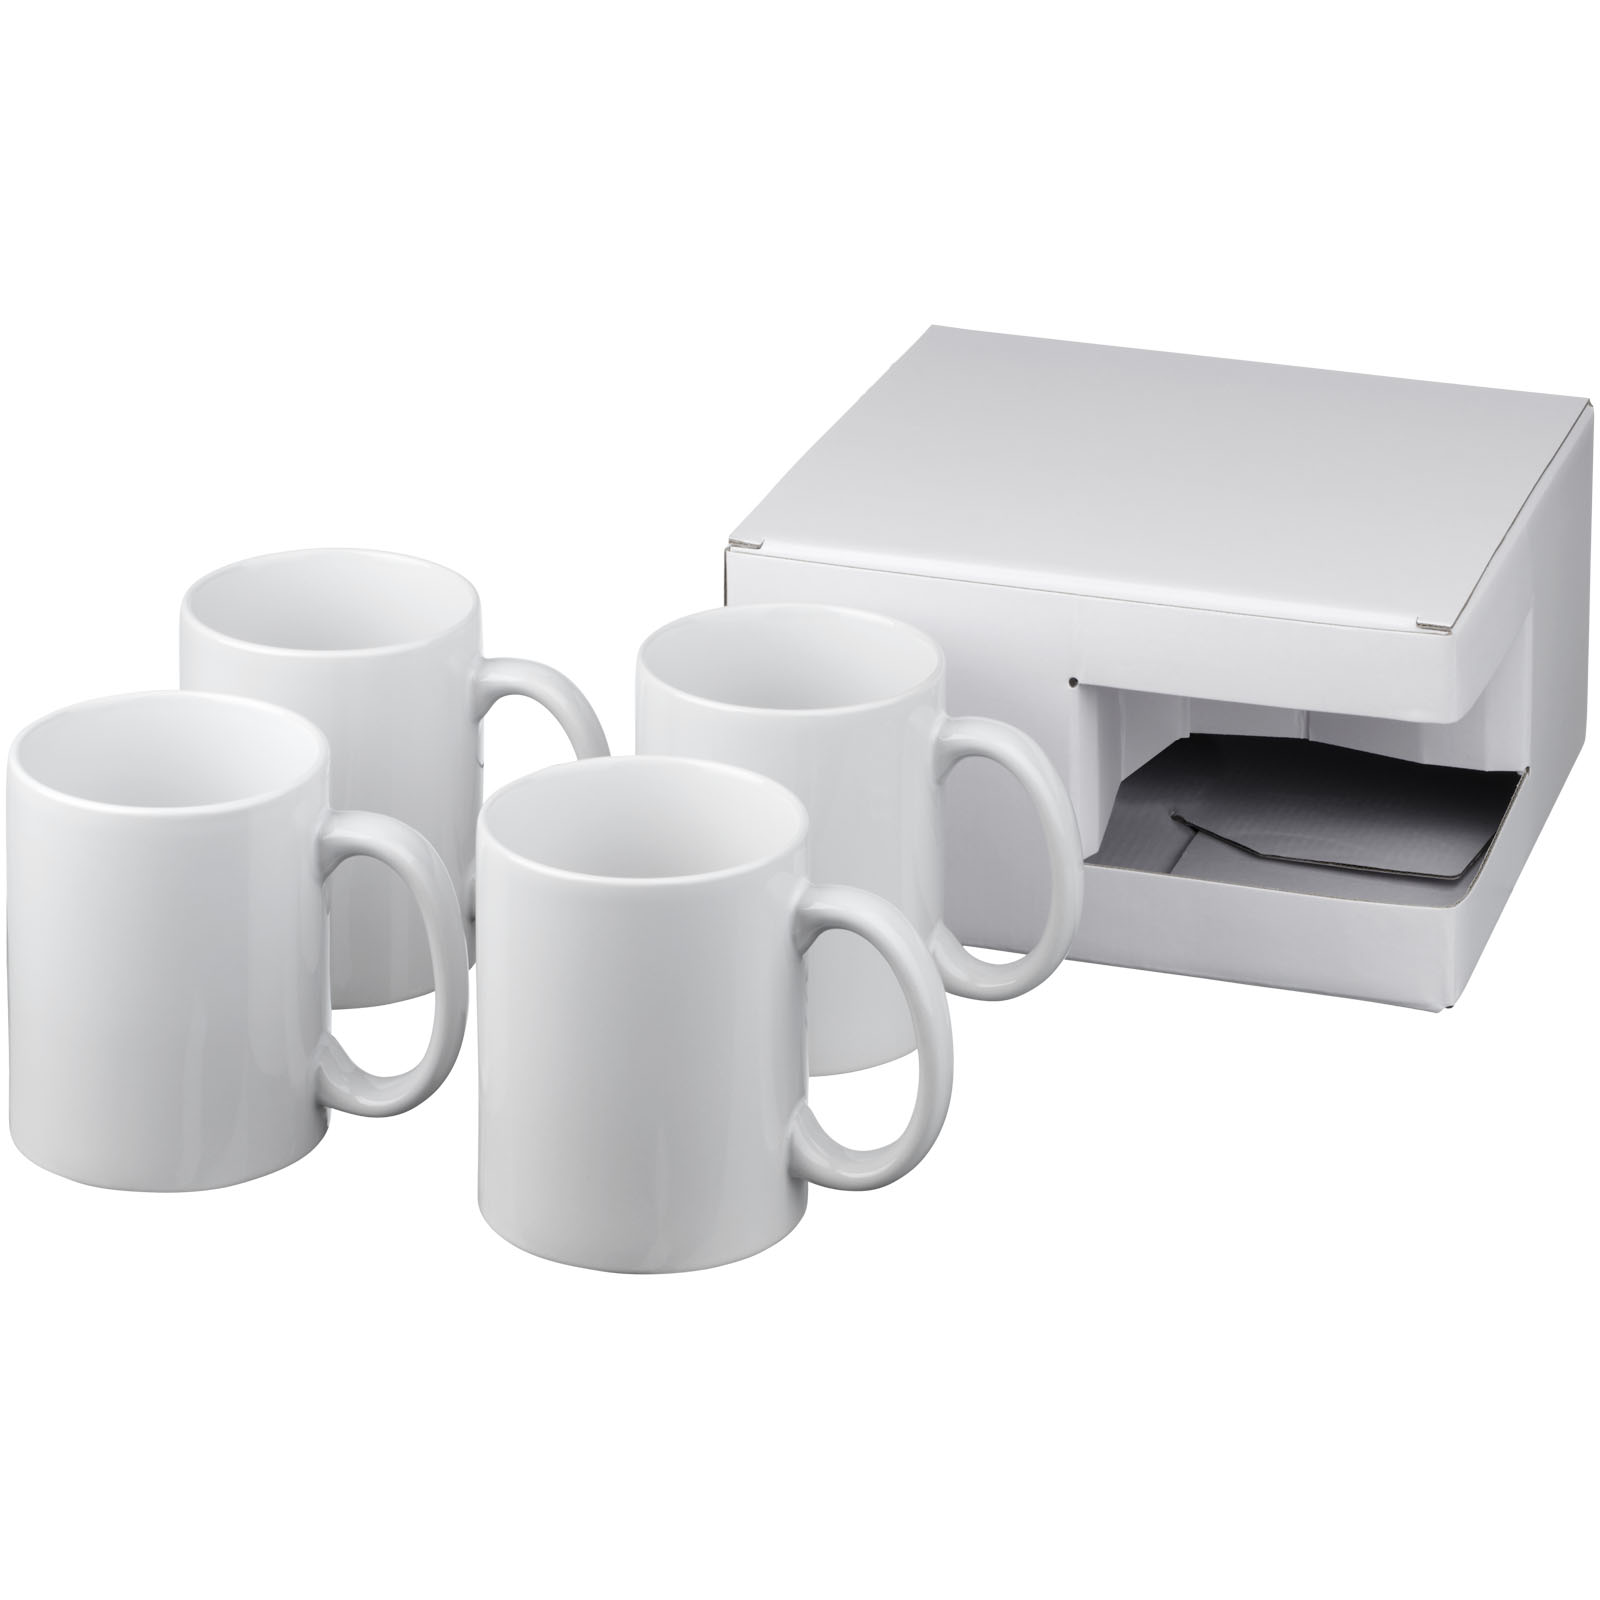 Ceramic mug 4-pieces gift set (10062700)